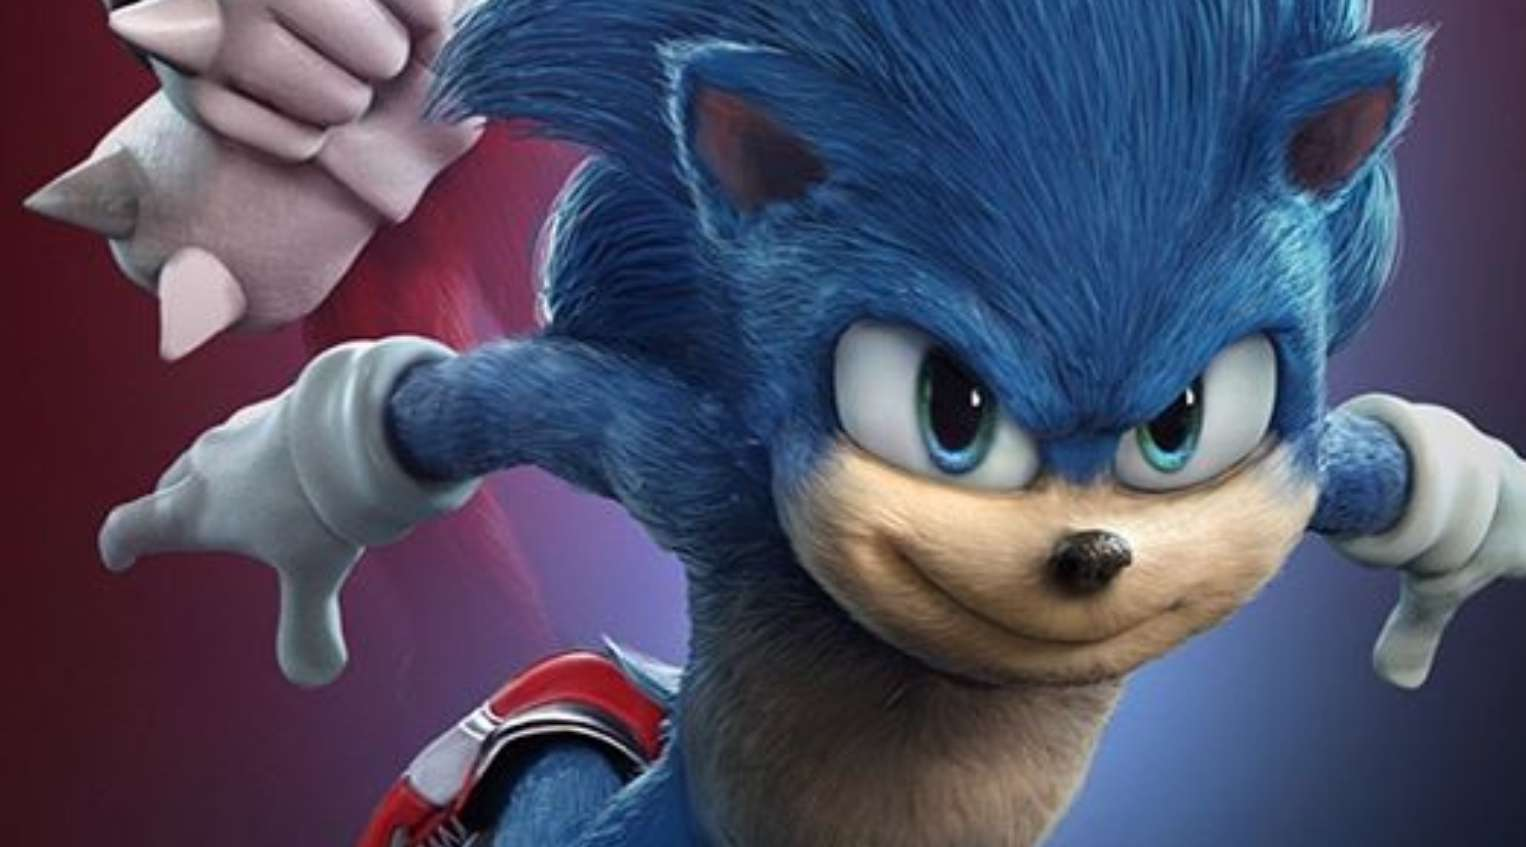 God of War Art Director Brings Sonic The Hedgehog Characters To Life In Instagram Post